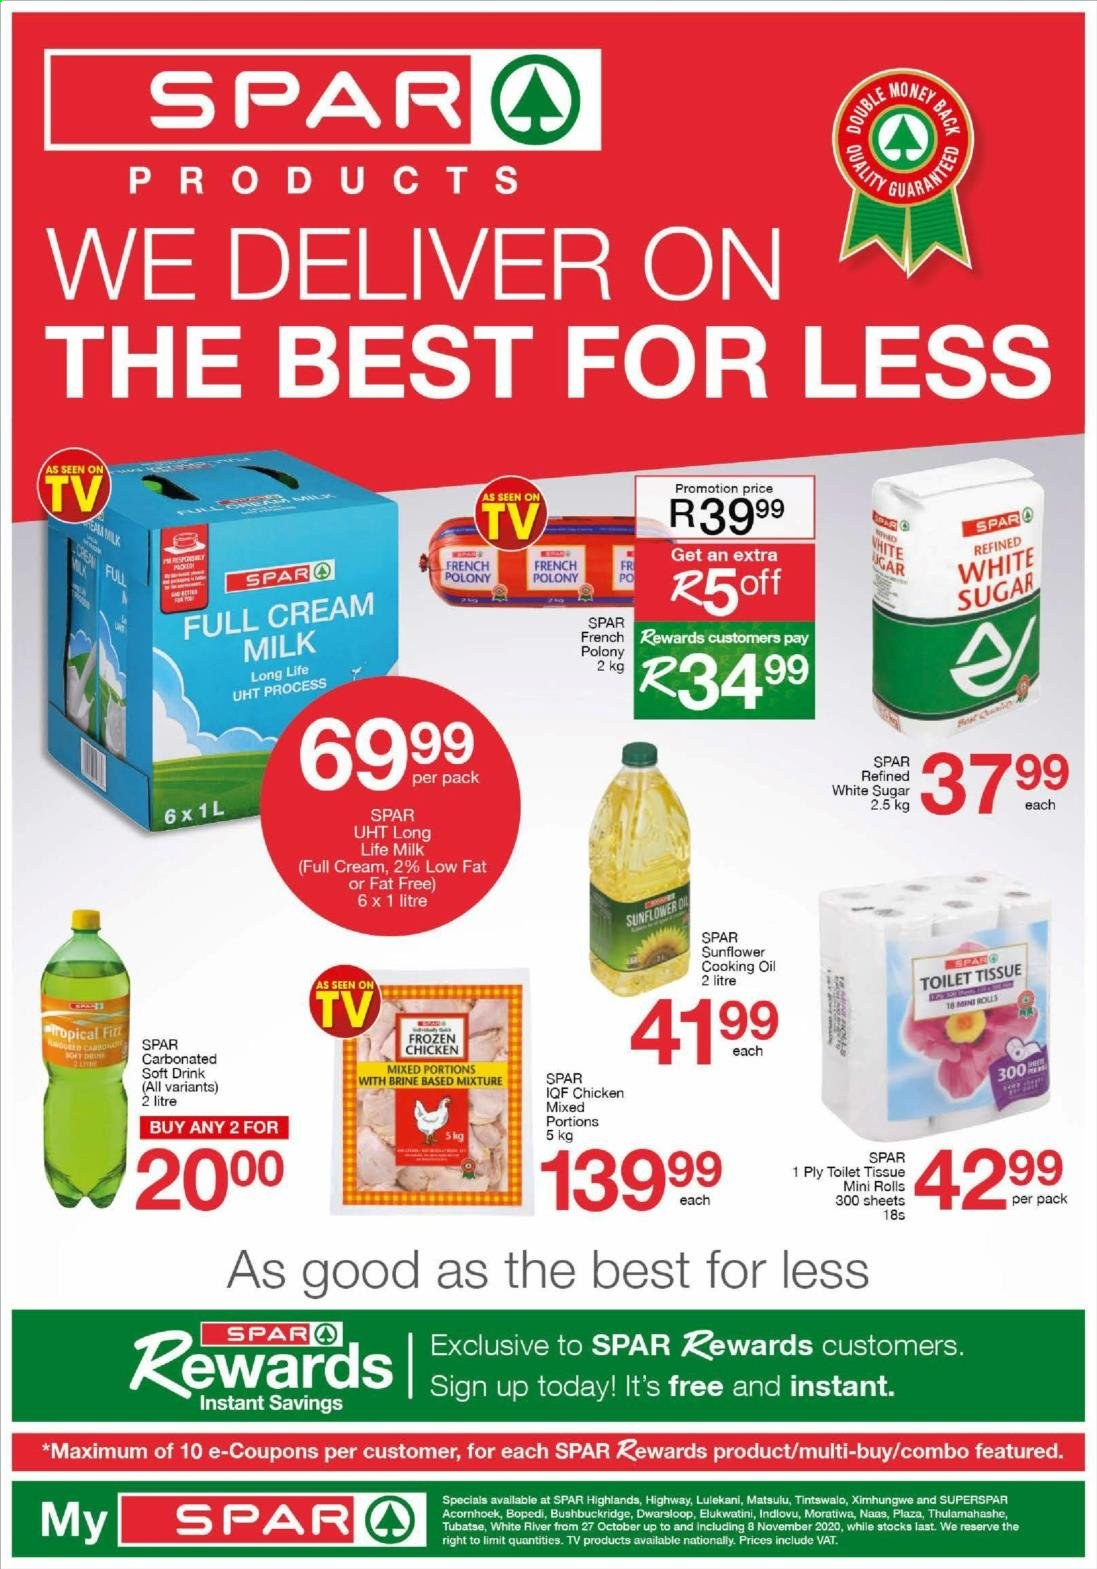 SPAR catalogue  - 10.27.2020 - 11.08.2020 - Sales products - cream, milk, sugar, chicken, toilet tissue, drink, sunflower, rolls, oil, long life milk, carbonated soft drink, soft drink. Page 1.